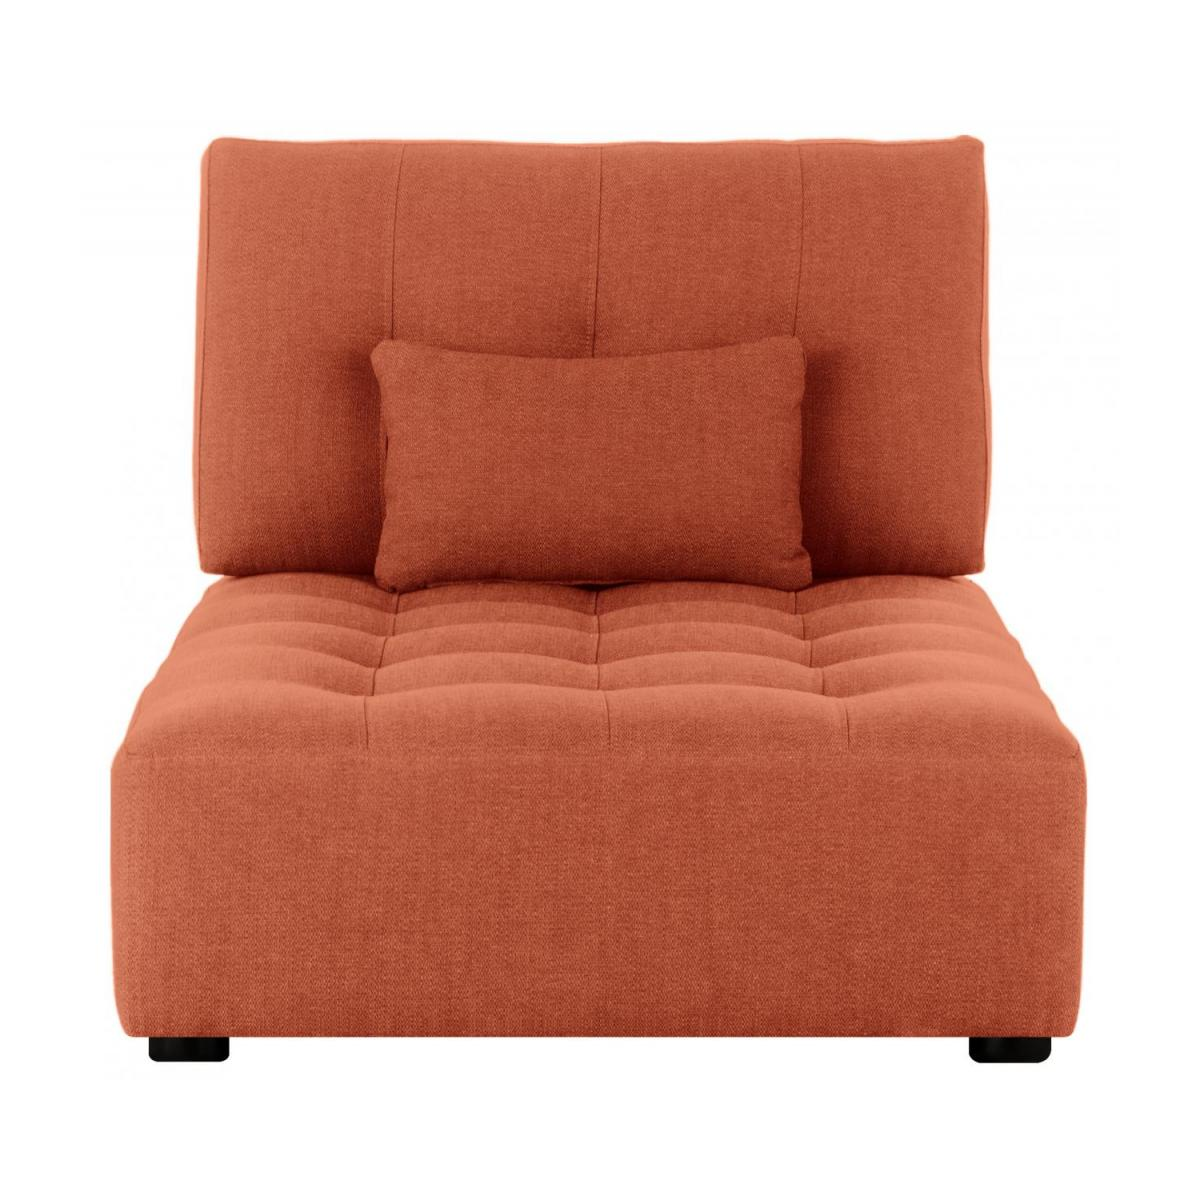 Chaiselongue aus Stoff - Orange n°2